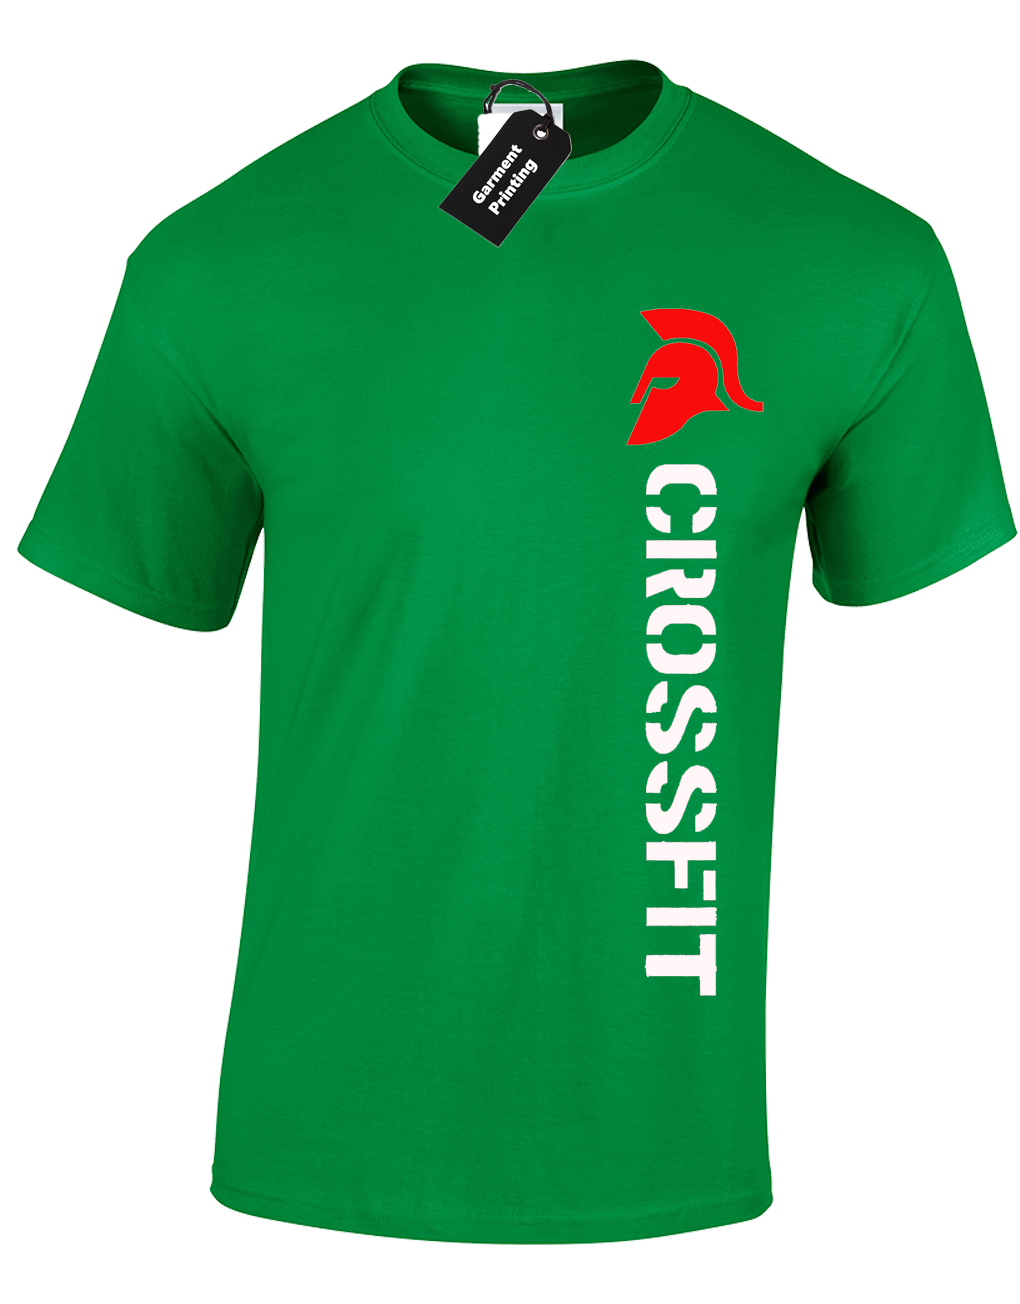 03ff35e80 Crossfit Spartan Mens T-Shirt Training Top For Gym Weights Running Fitness  6 6 of 12 ...